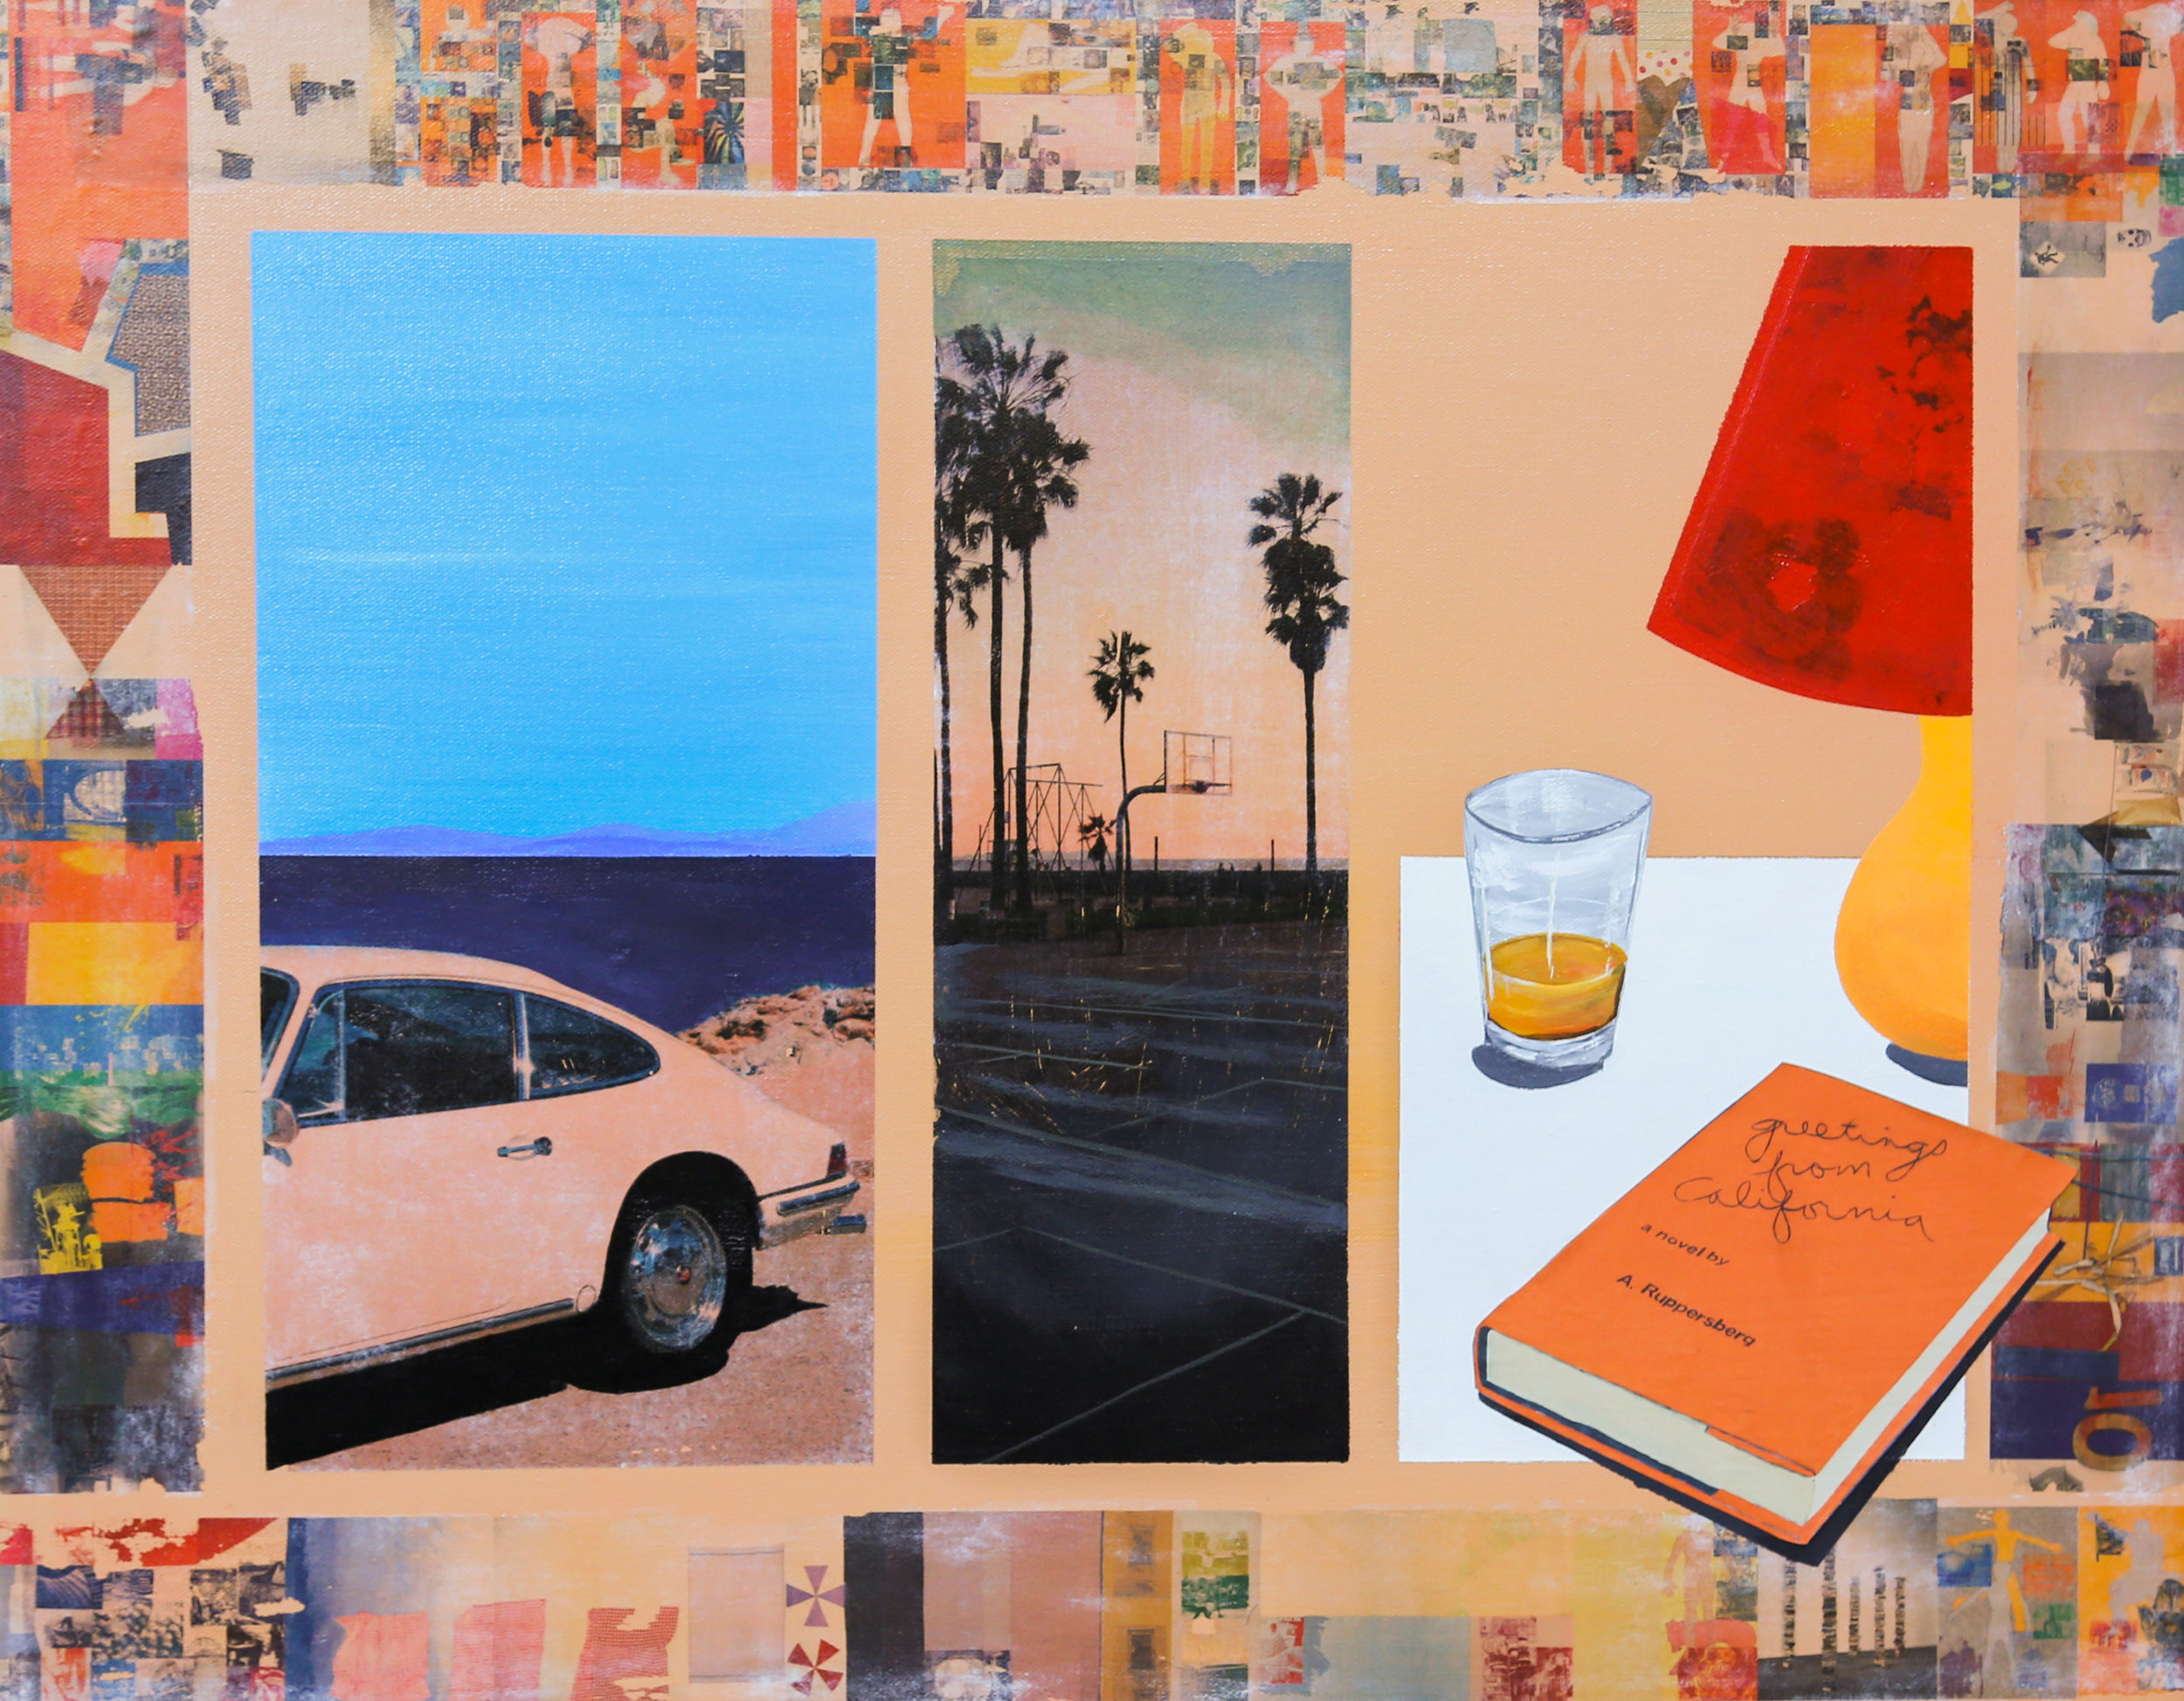 greetings from California, from me, Allen Ruppersberg & Robert Rauschenberg